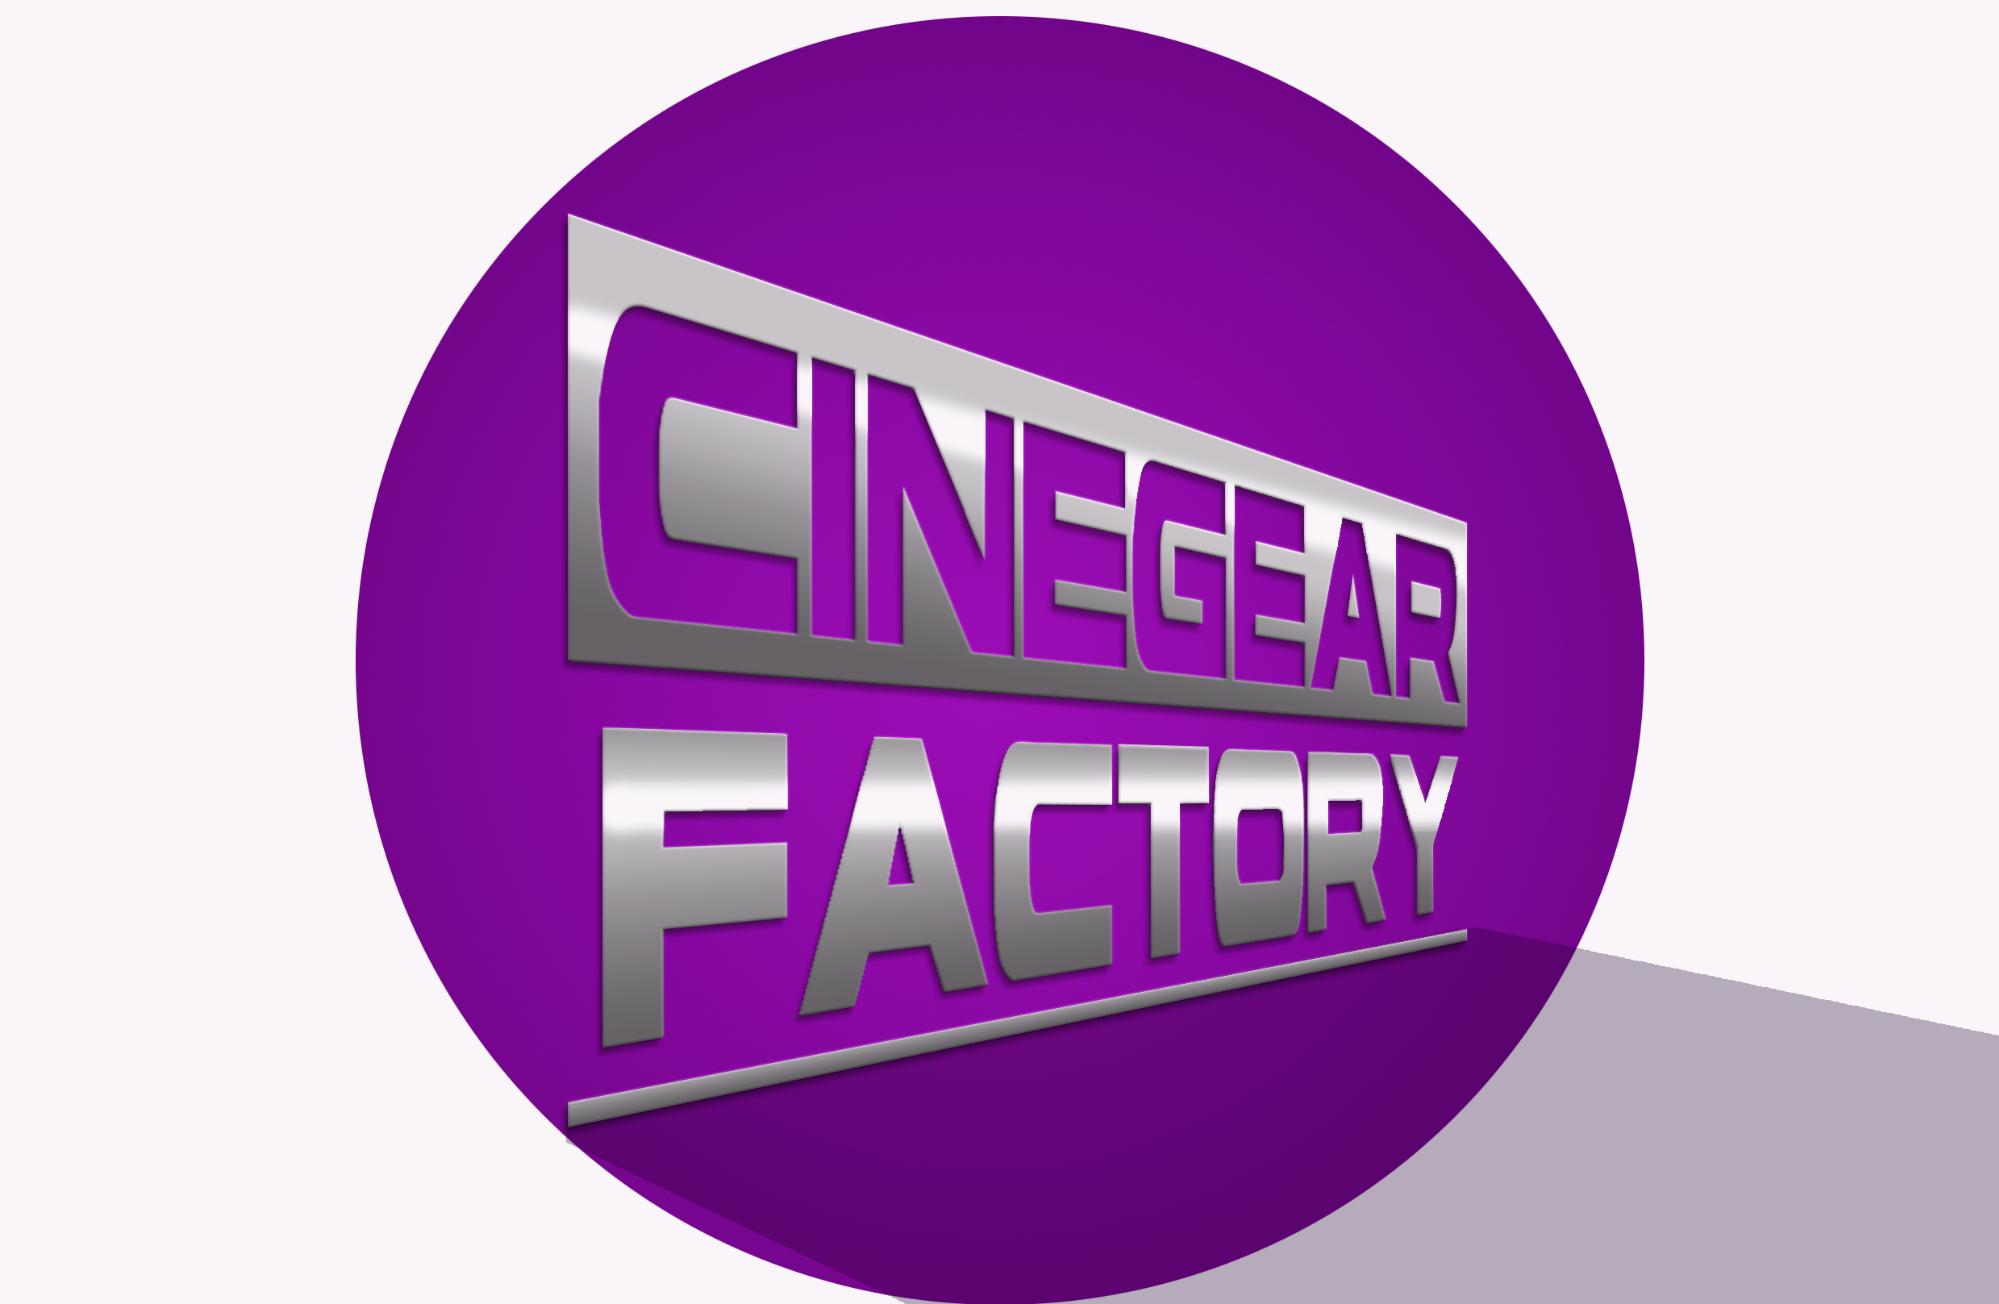 CineGearFactory-One Stop Purchase for All Your Film/Video/Broadcast/Studio equipment